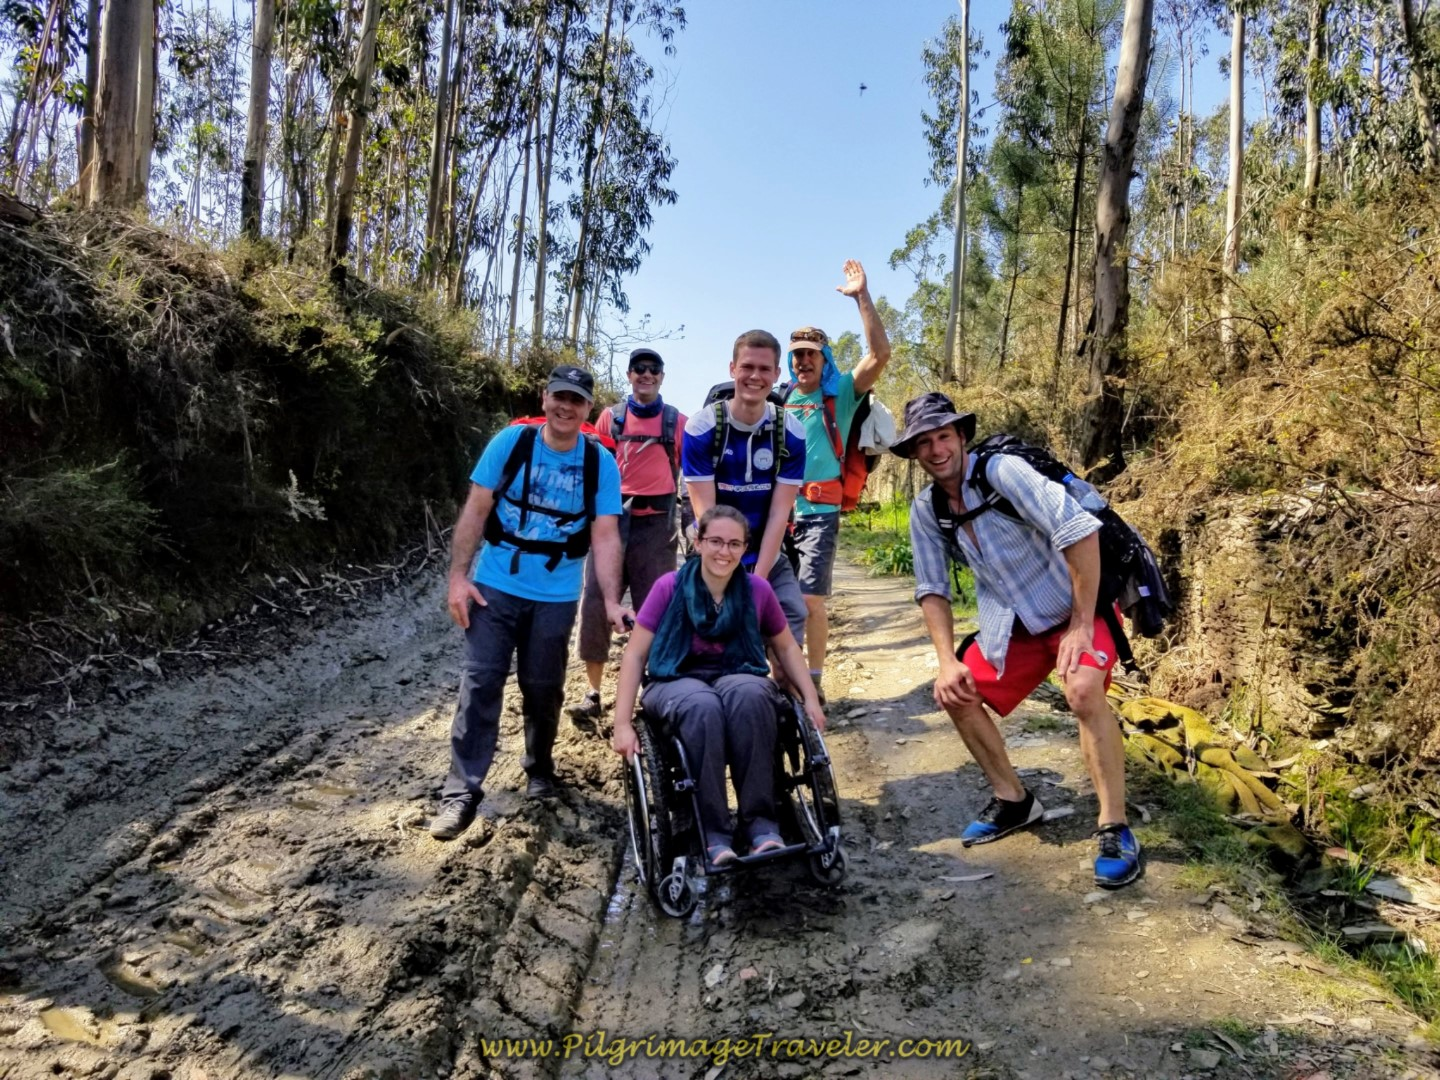 The Magdalena Mud Team guides the wheelchair through the mud and ruts on the Rua Caminho de Santiago on day sixteen of the Central Route of the Portuguese Way